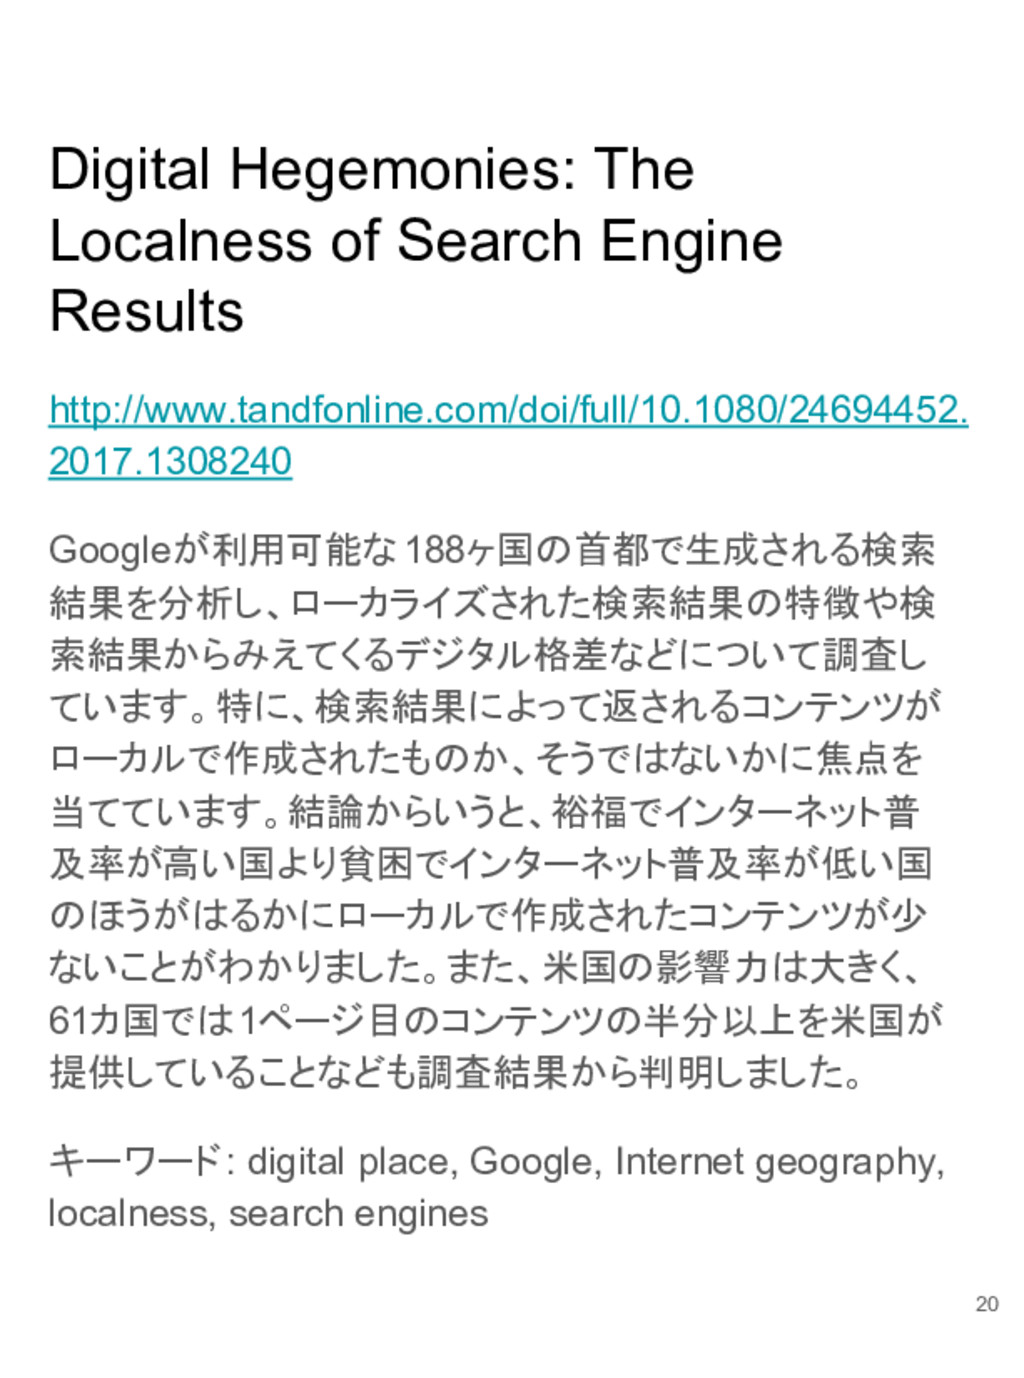 Digital Hegemonies: The Localness of Search Eng...